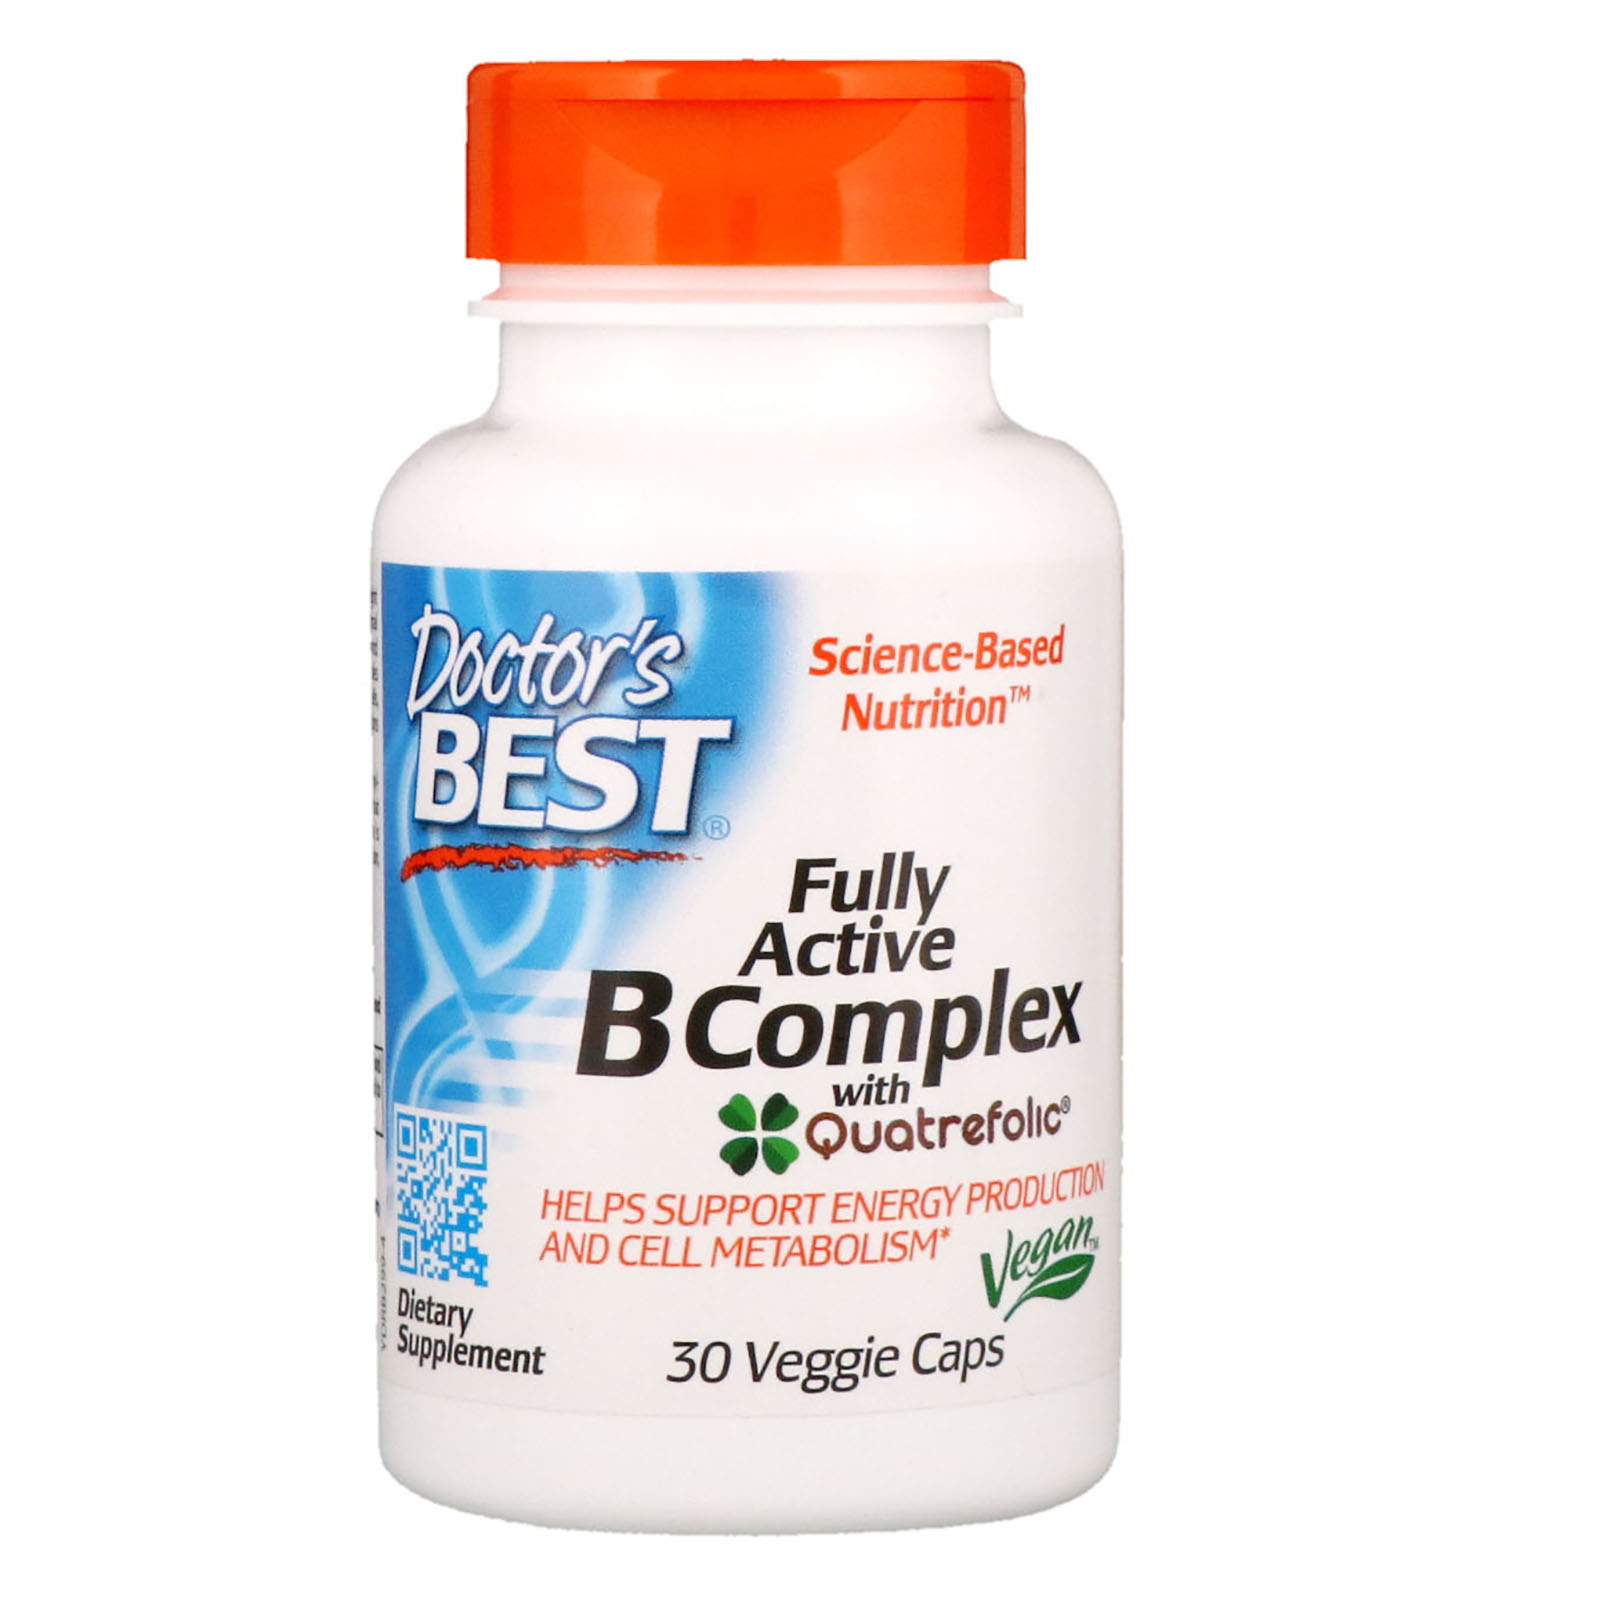 Doctor's Best, Fully Active B Complex with Quatrefolic, 30